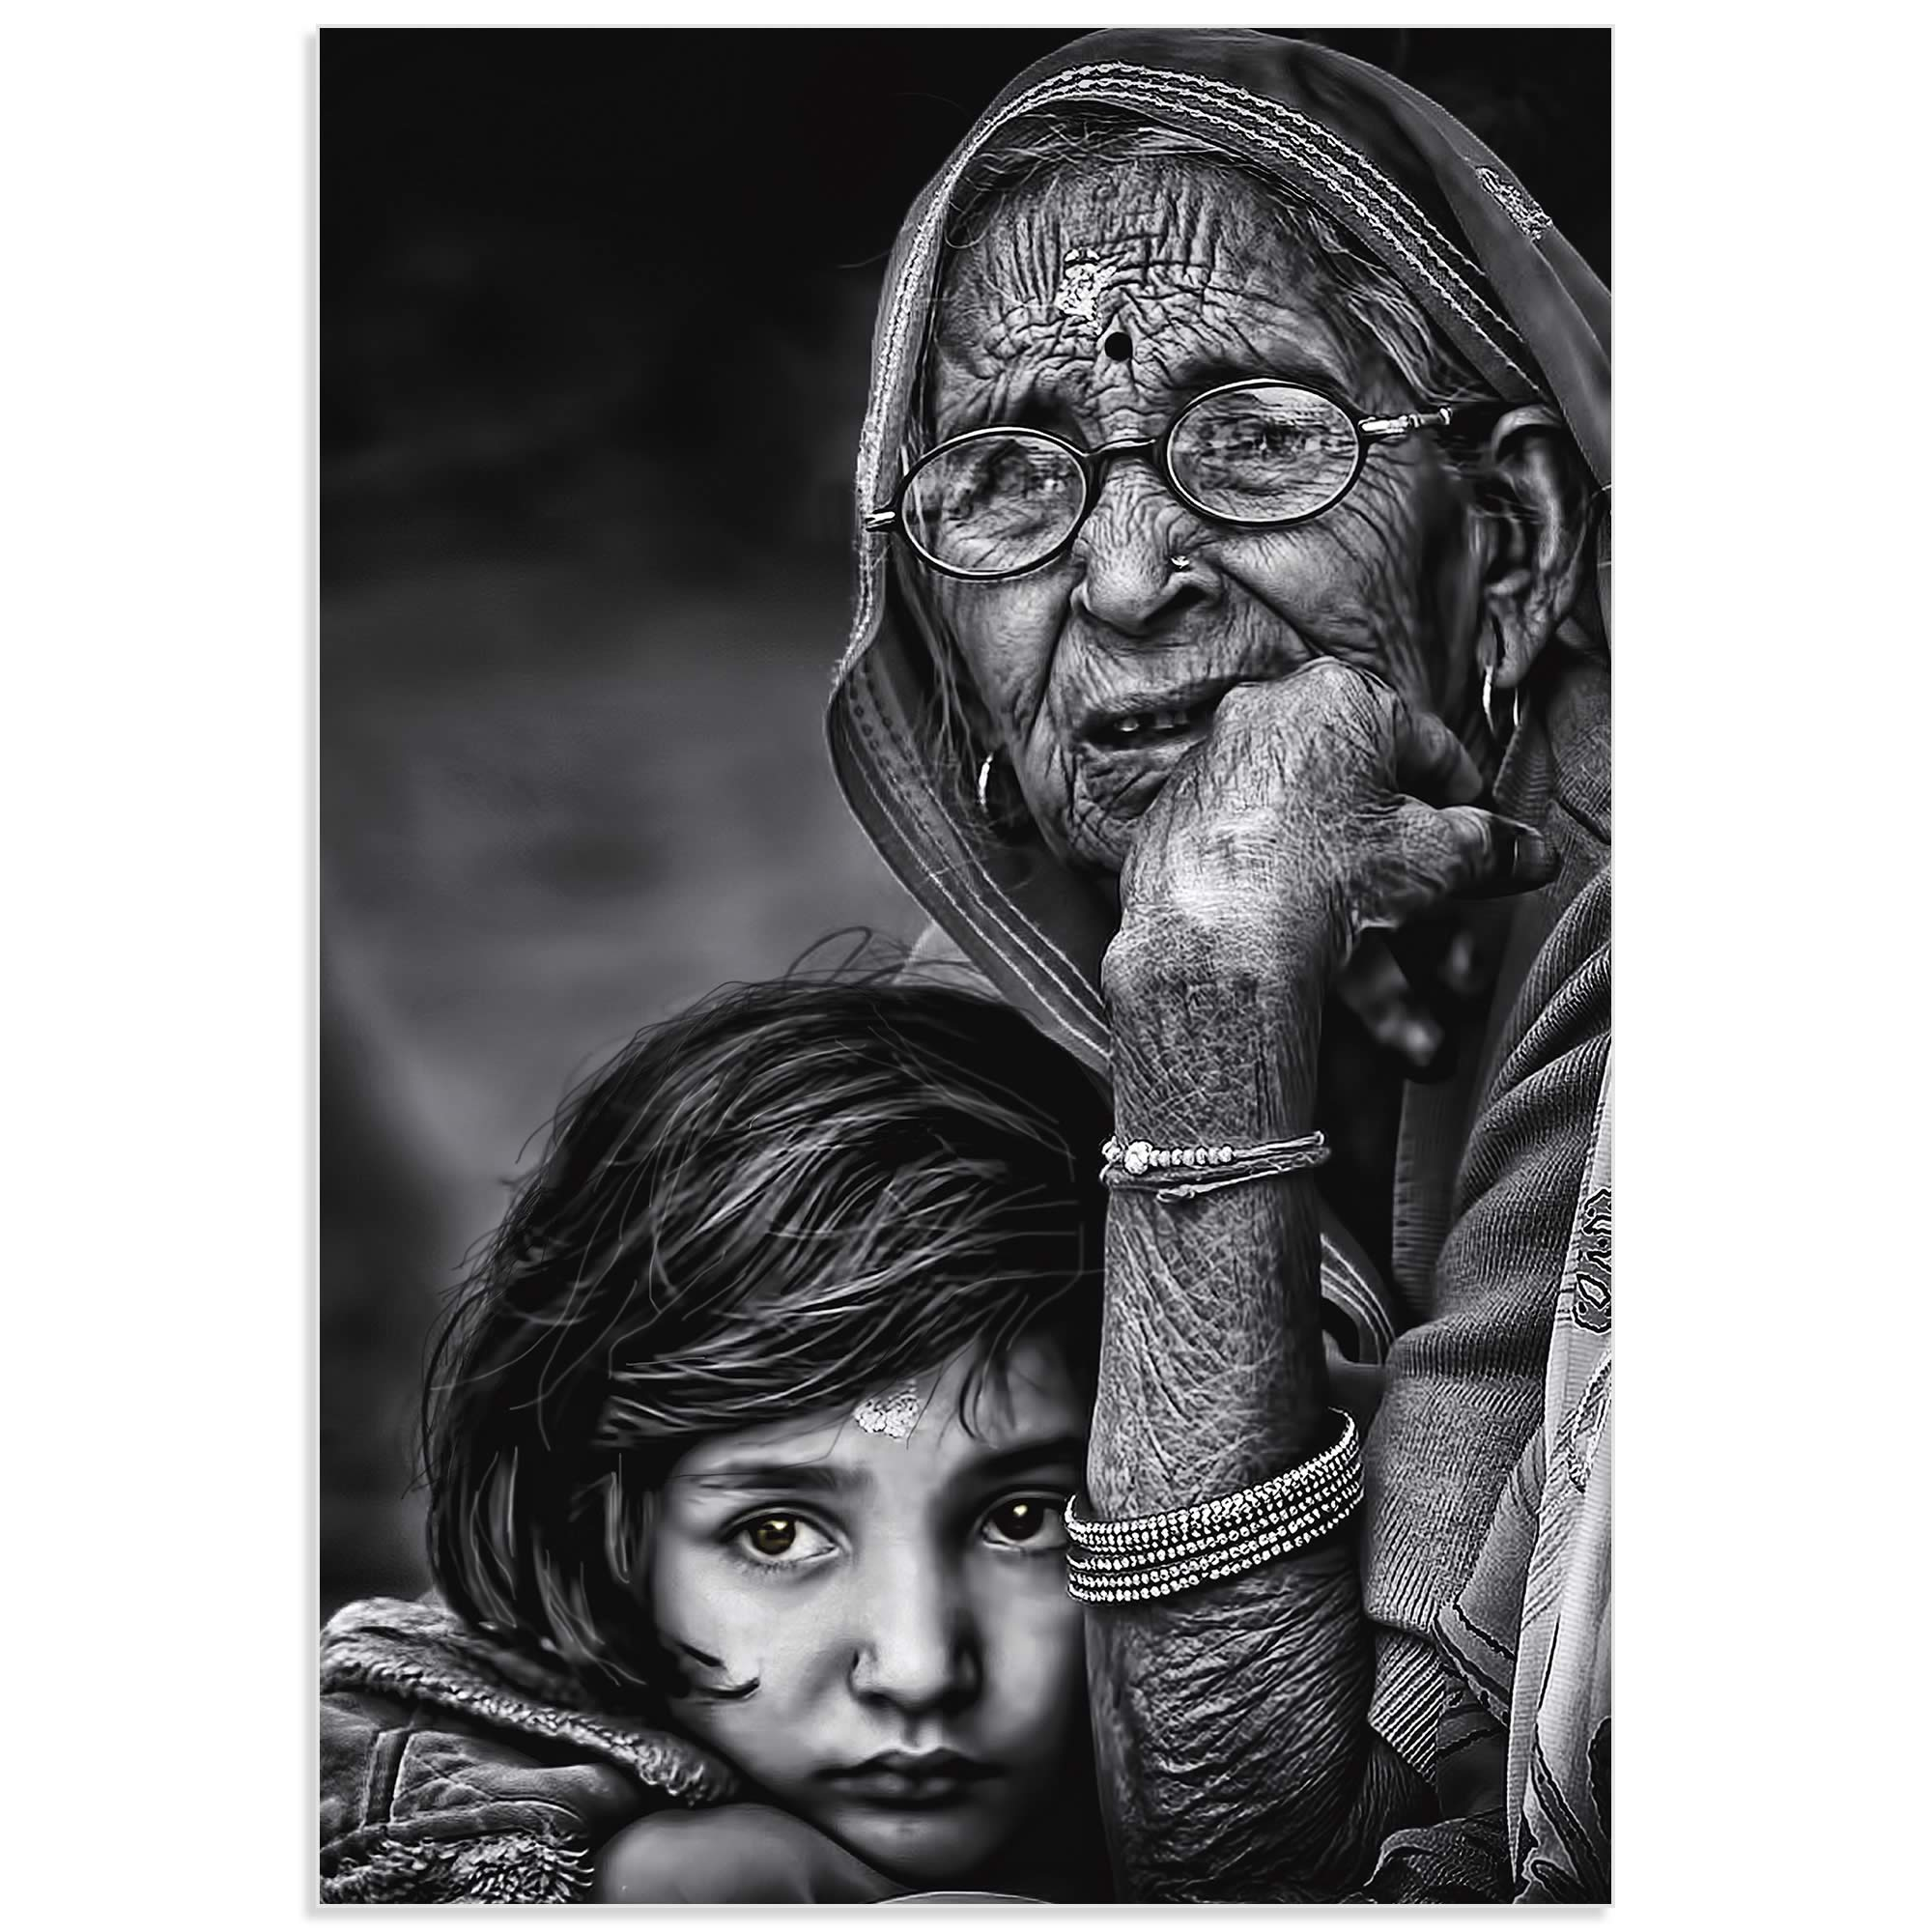 Grandmother by Piet Flour - Hindu Family Art on Metal or Acrylic - Alternate View 2